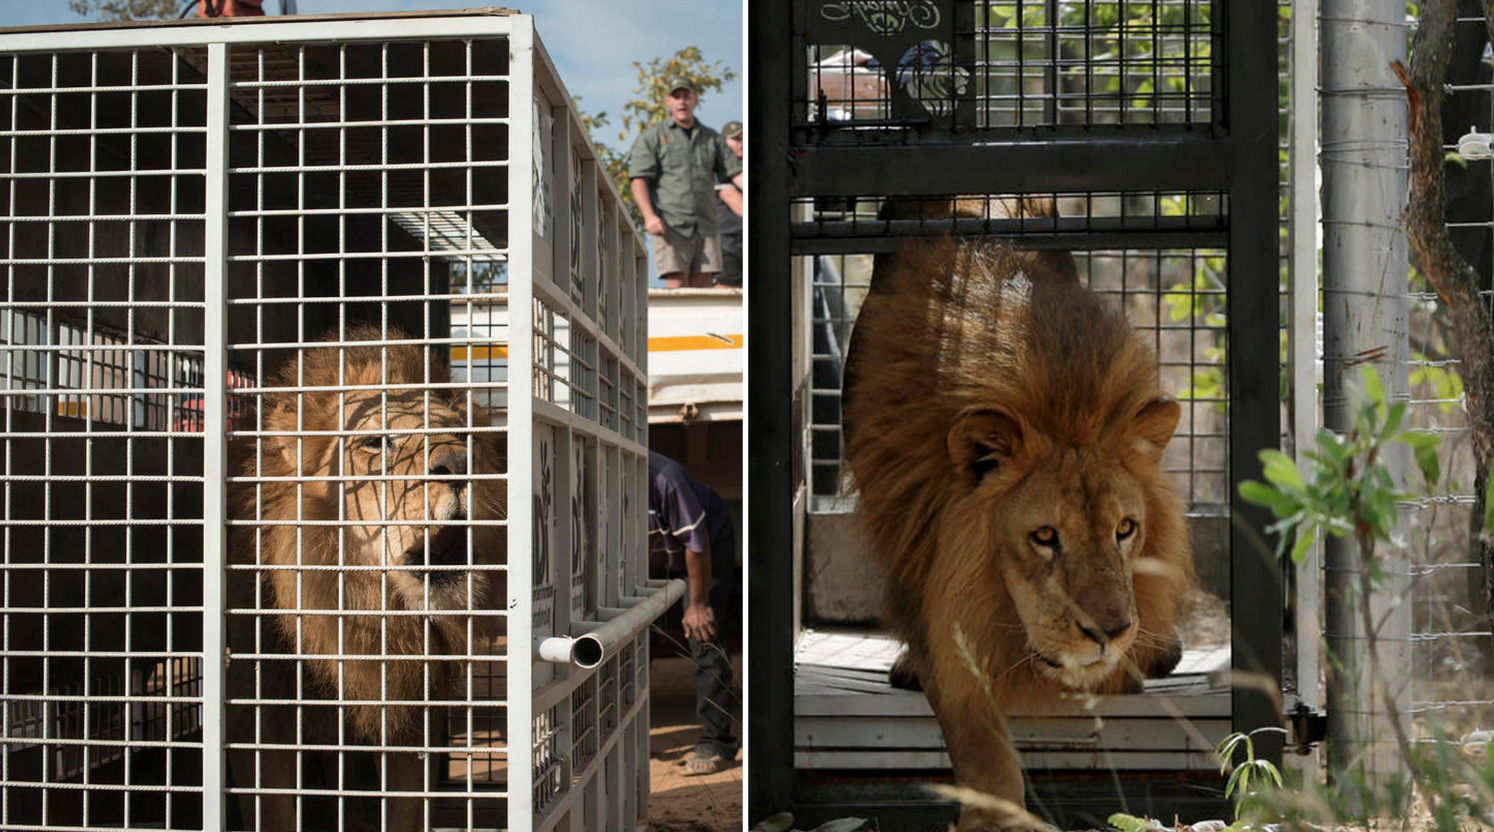 After lifetime of abuse, 33 rescued circus lions step out of cages for 1st time